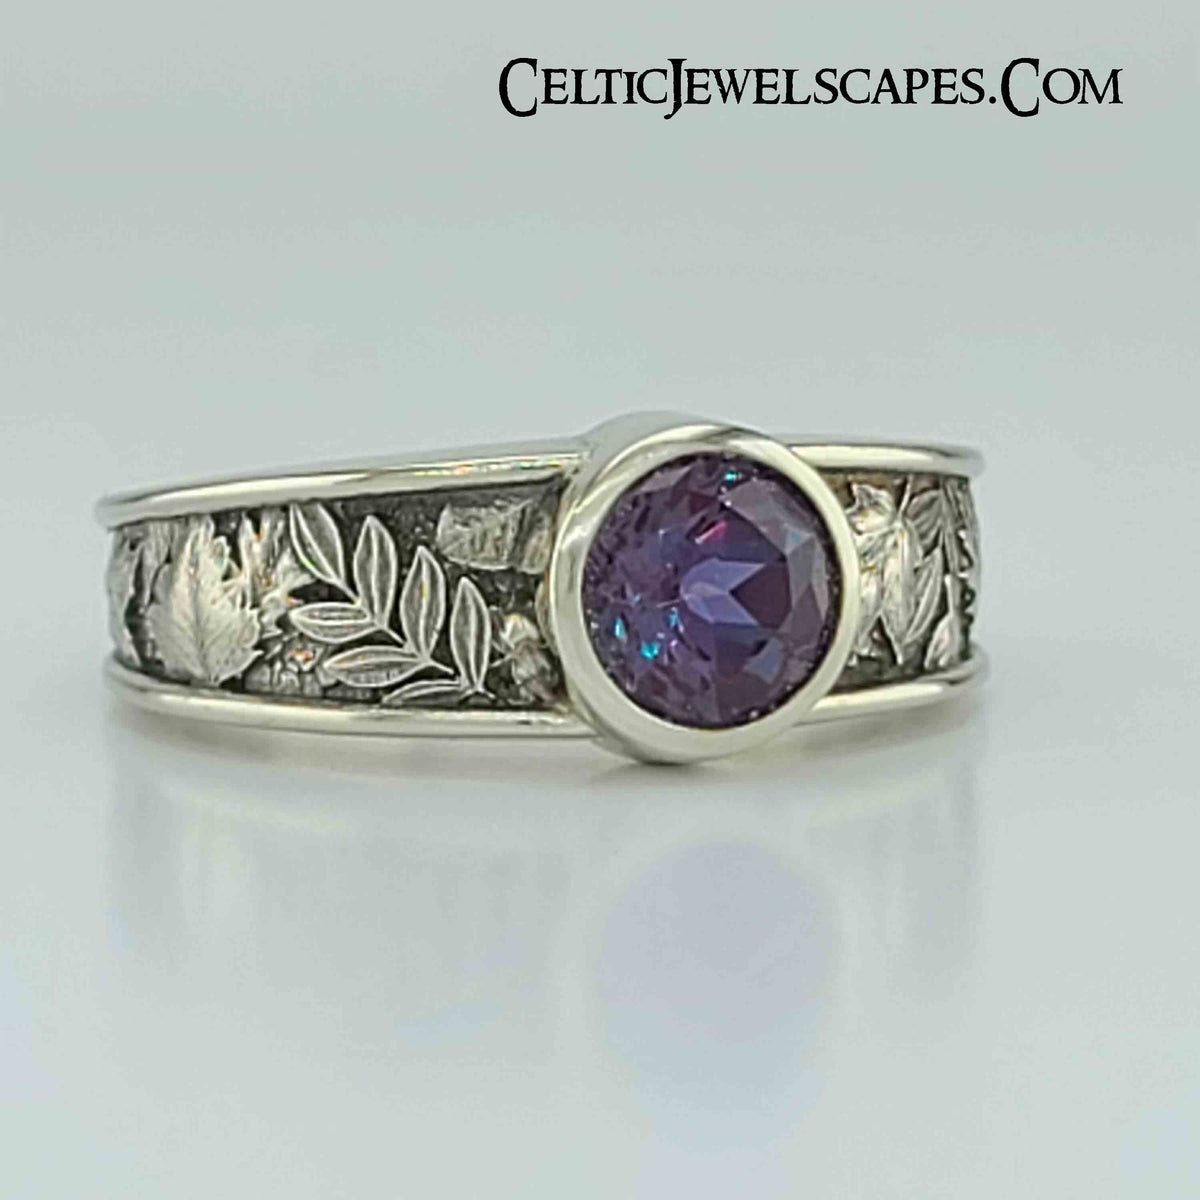 AUTUMN LEAVES TAPERED with Alexandrite - 14KT $1399 Sterling $559